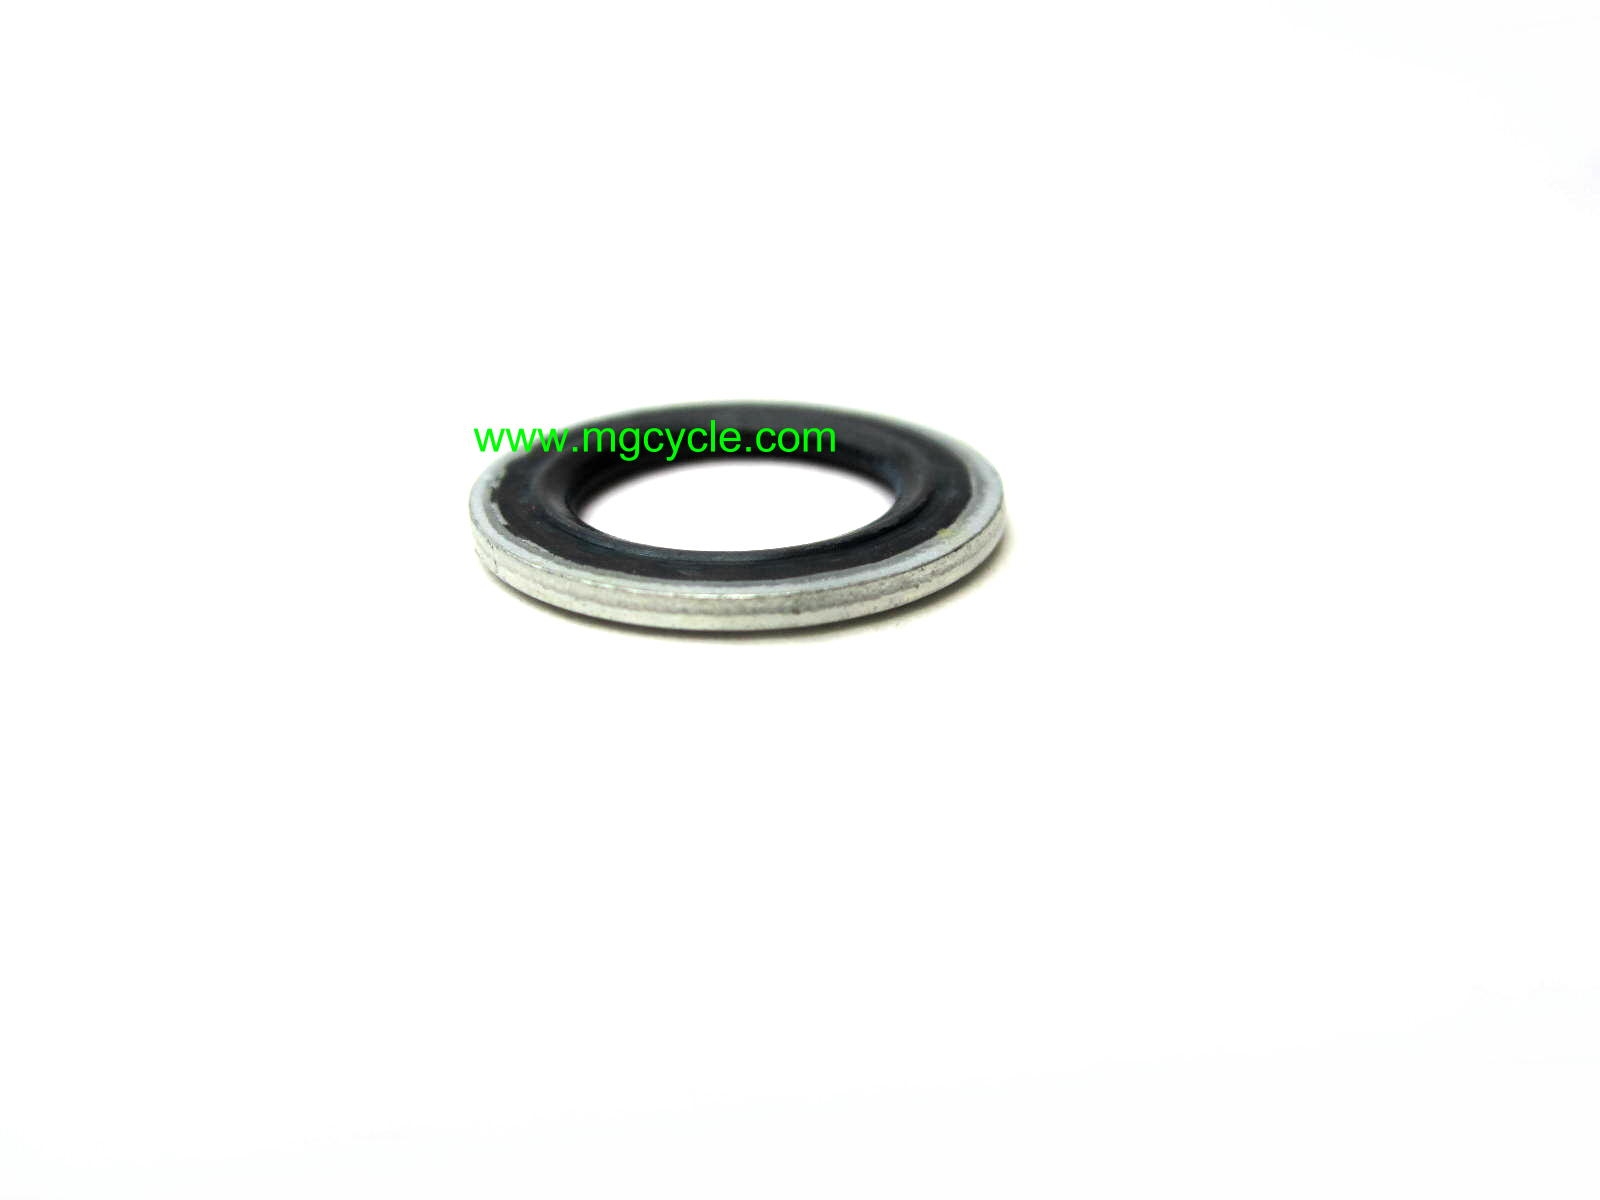 aluminum seal washer, 12mm